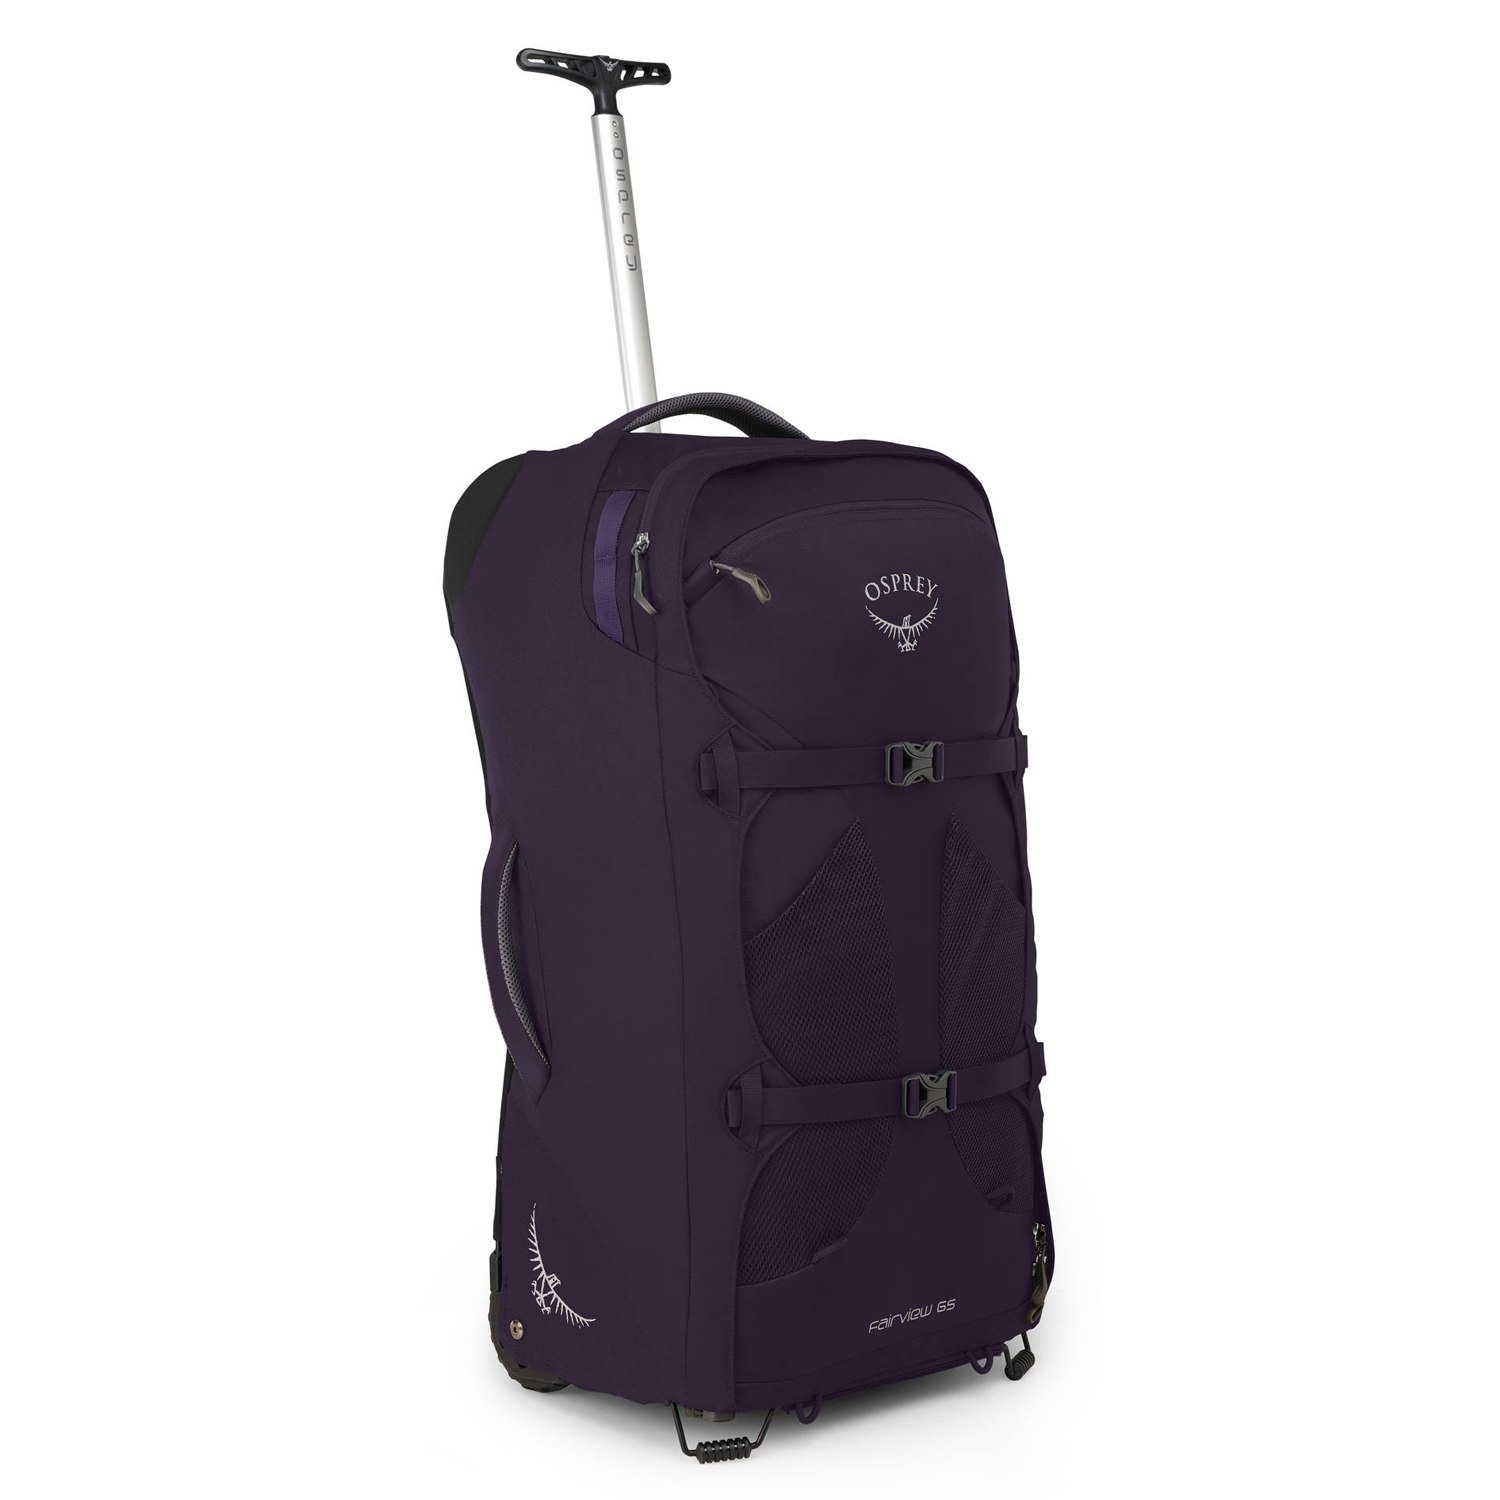 Picture of Osprey Fairview Wheels 65 - Women's Travel Bag - Amulet Purple